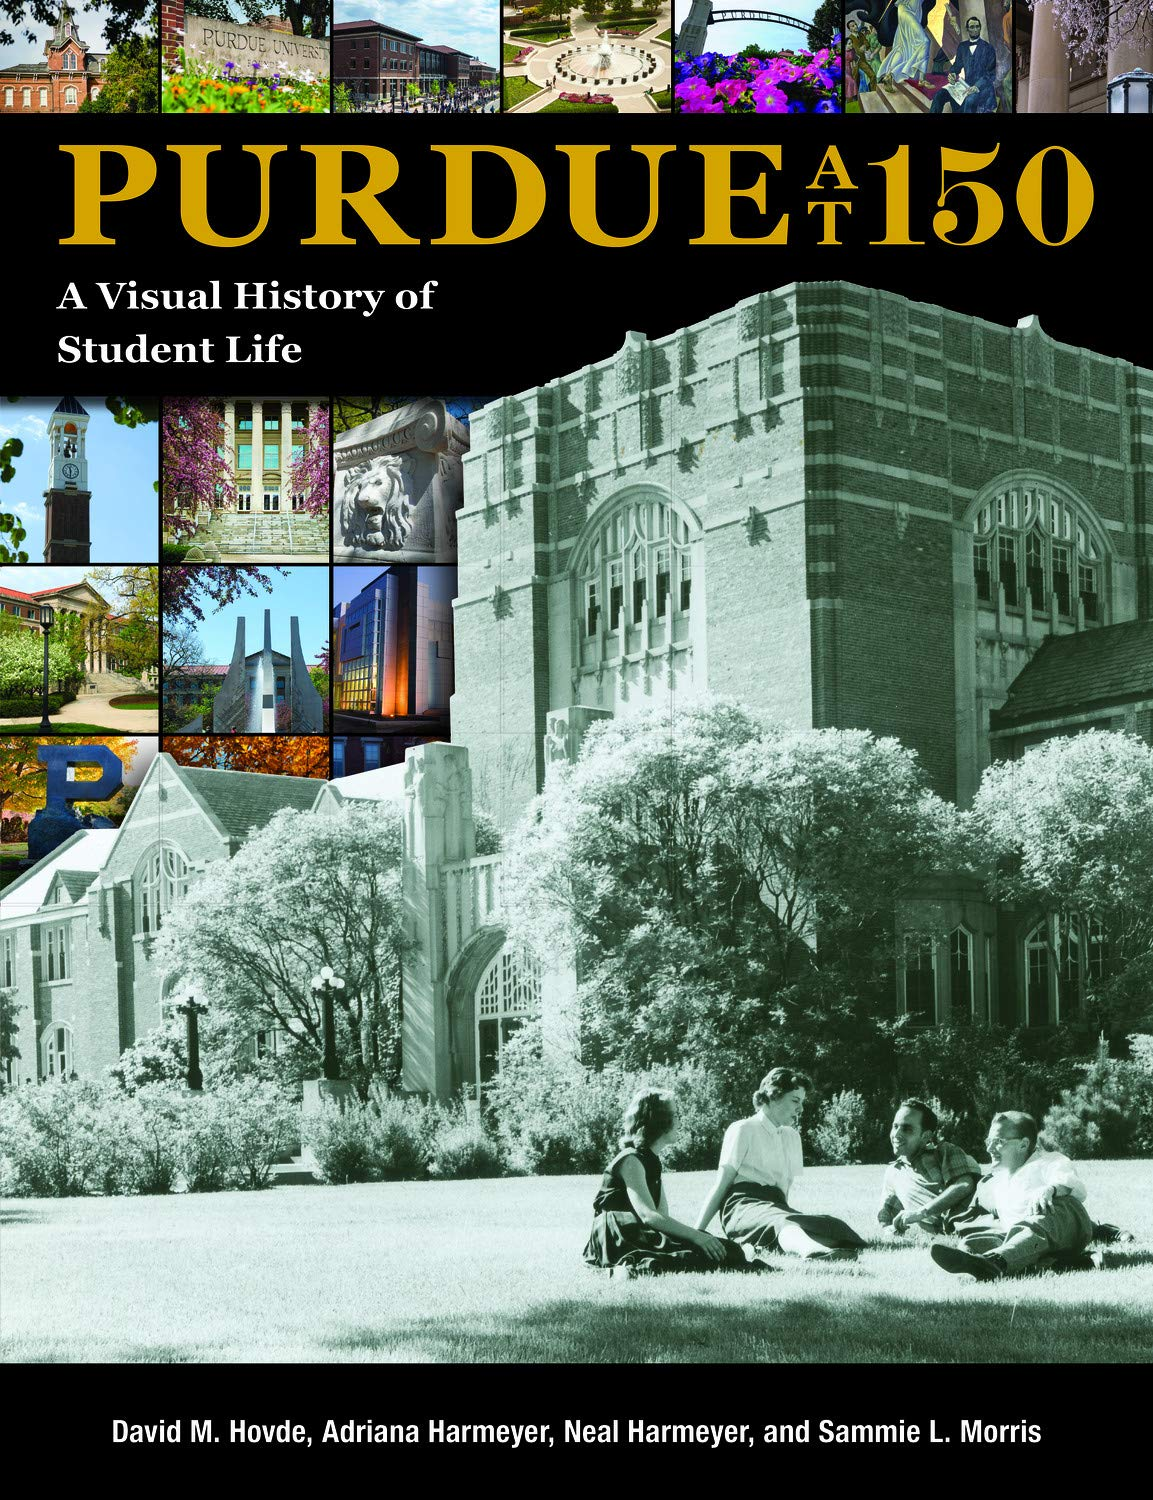 Purdue at 150: A Visual History of Student Life by Purdue University Press